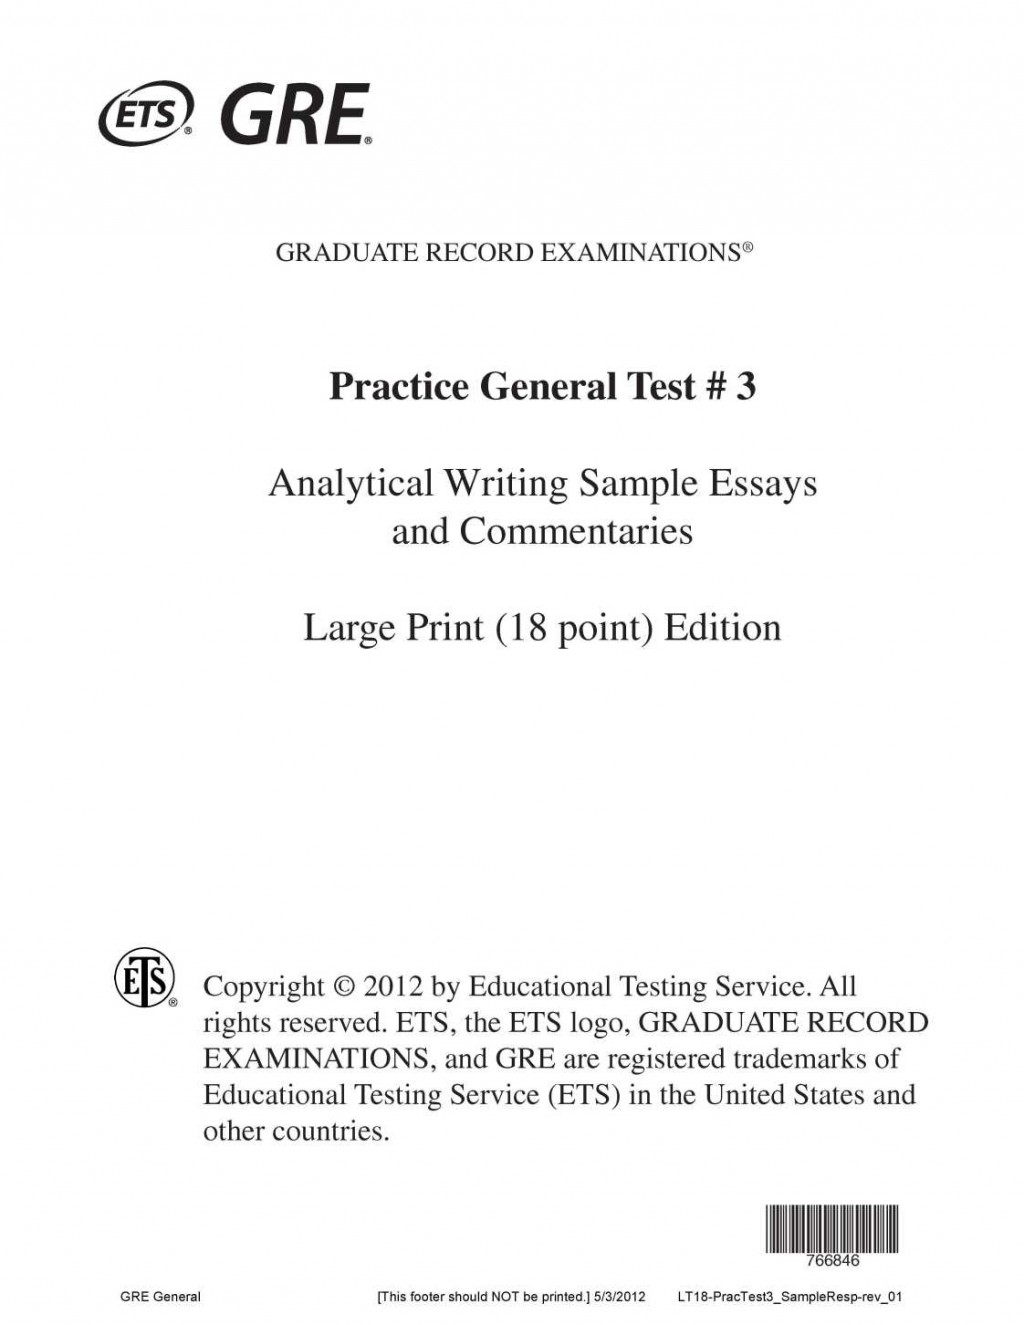 010 Toefl Sample Essay Culture Essays Gre Pool Analytical Writ Awa With Answers Issue Book Pdf Prompts Practice Questions Formidable Example Large